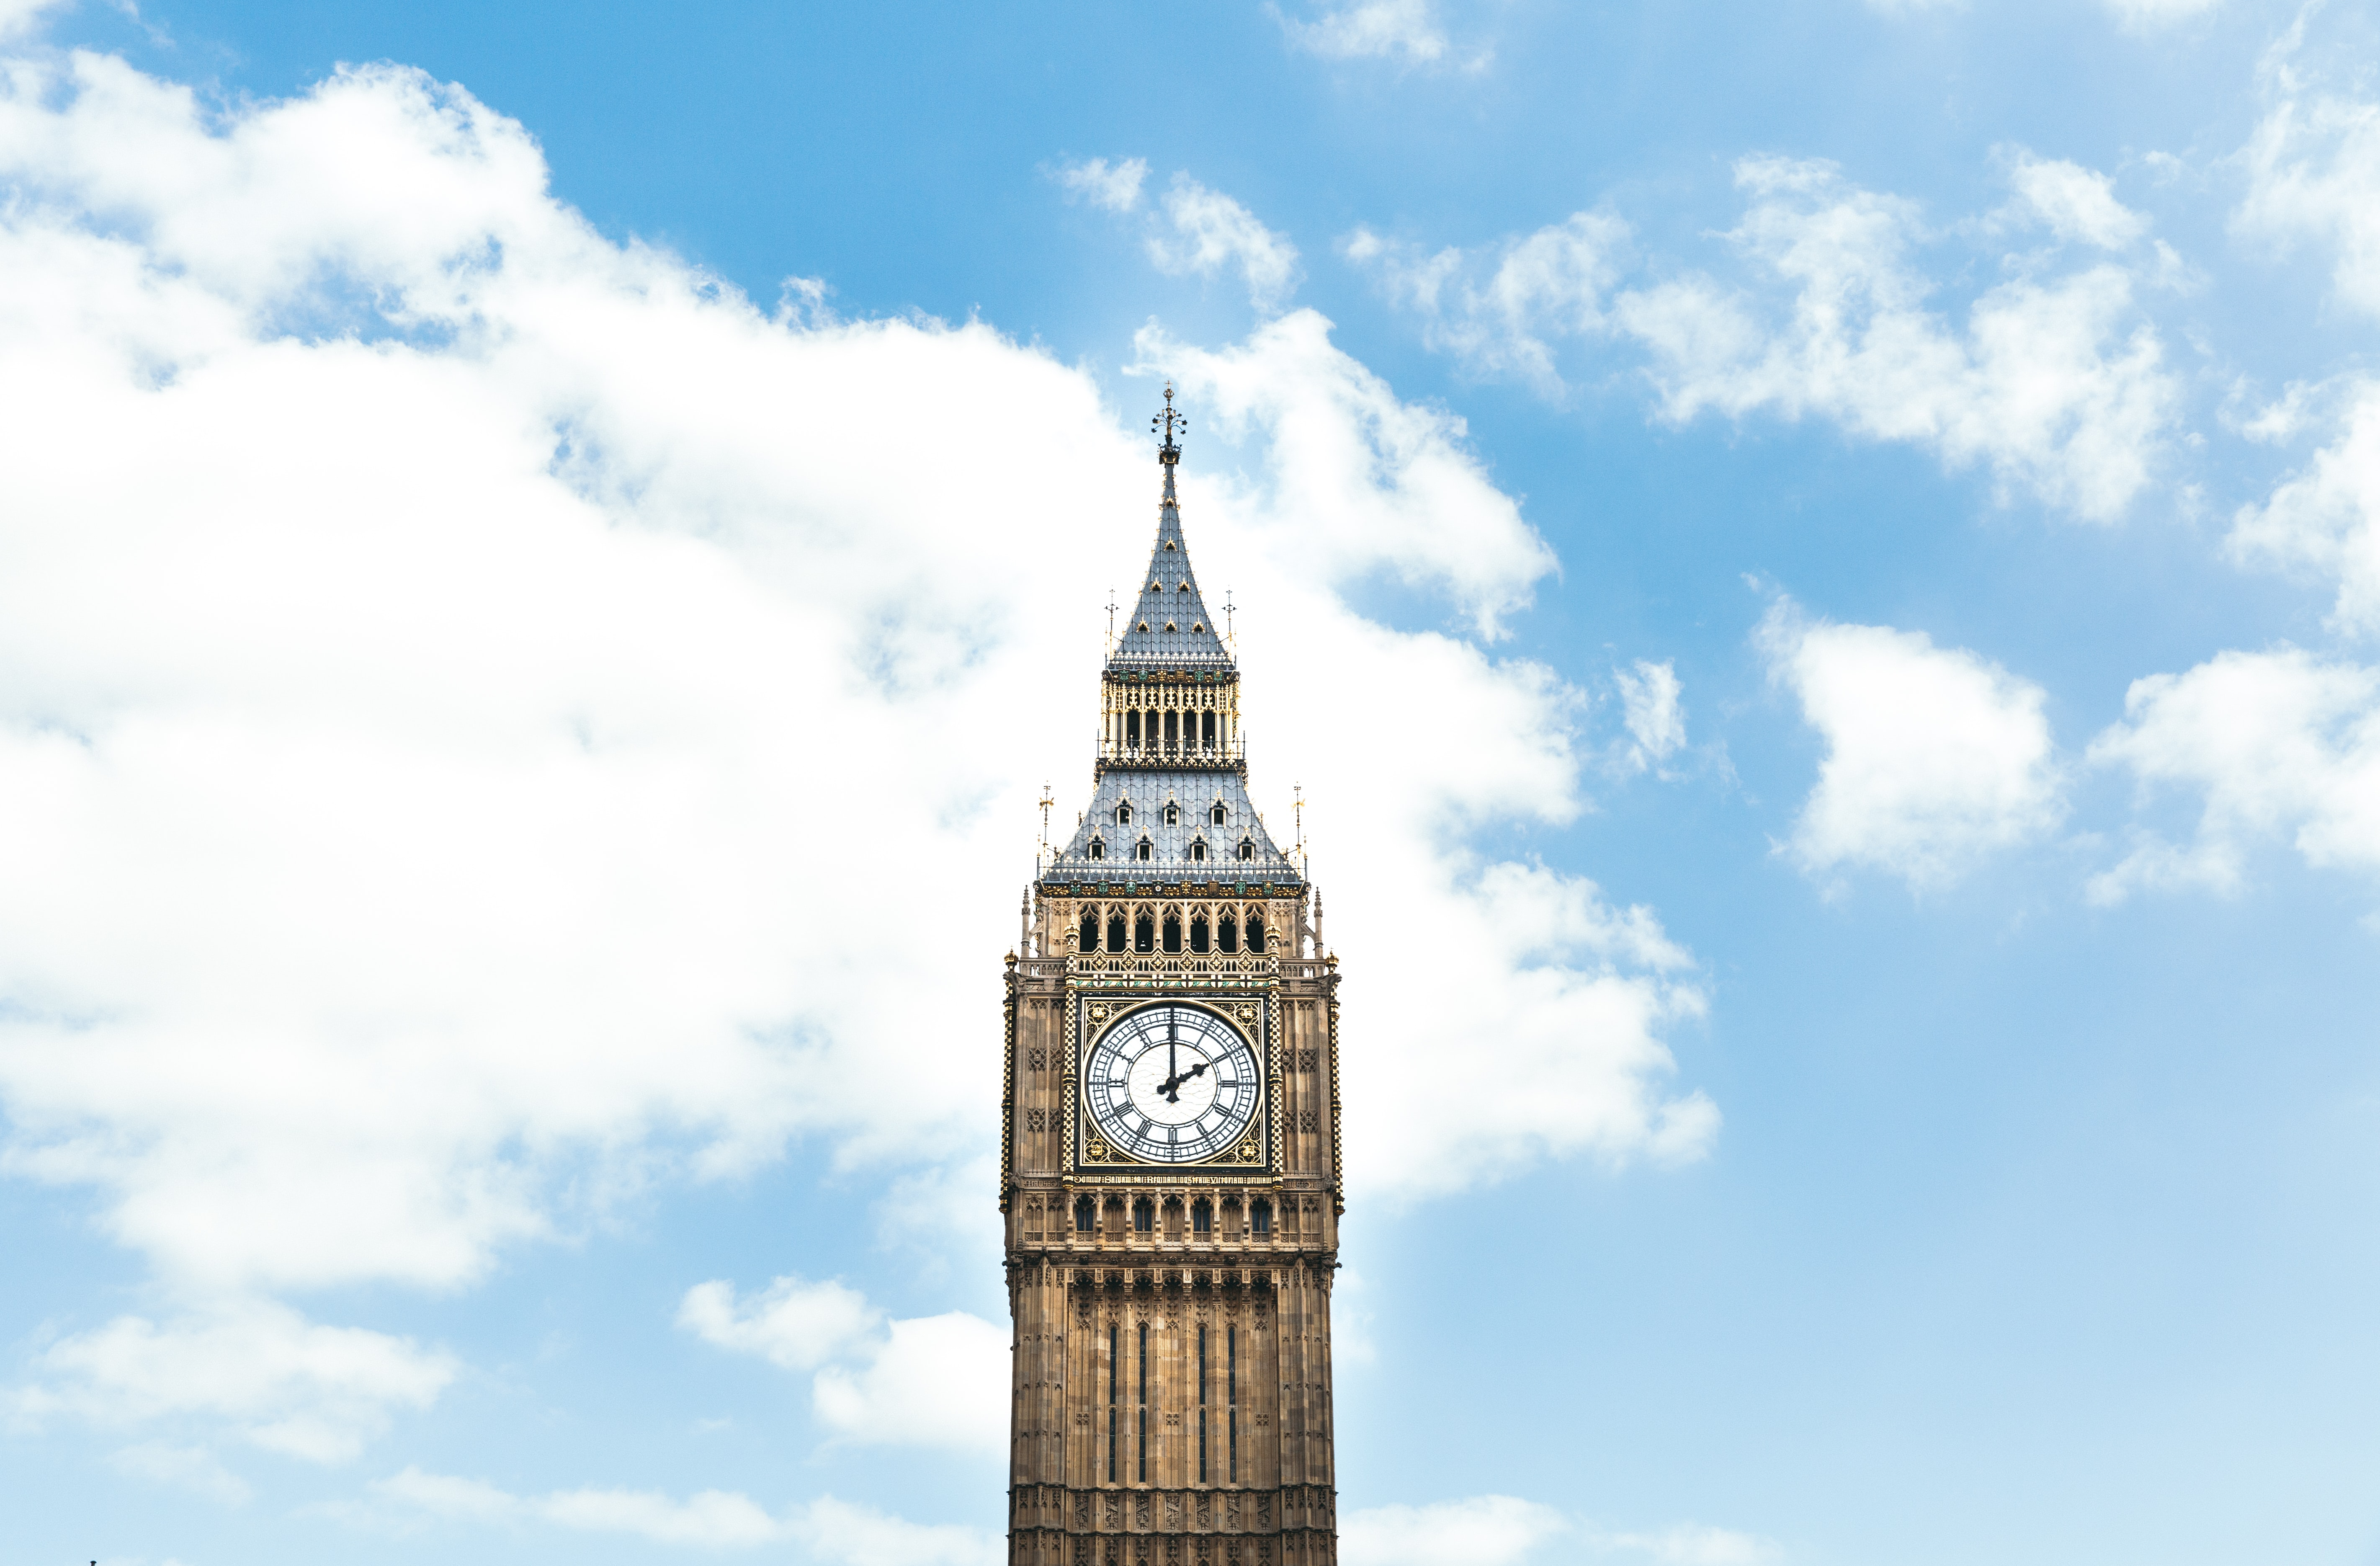 The view of the London's famous landmark, big ben with clouds over it.